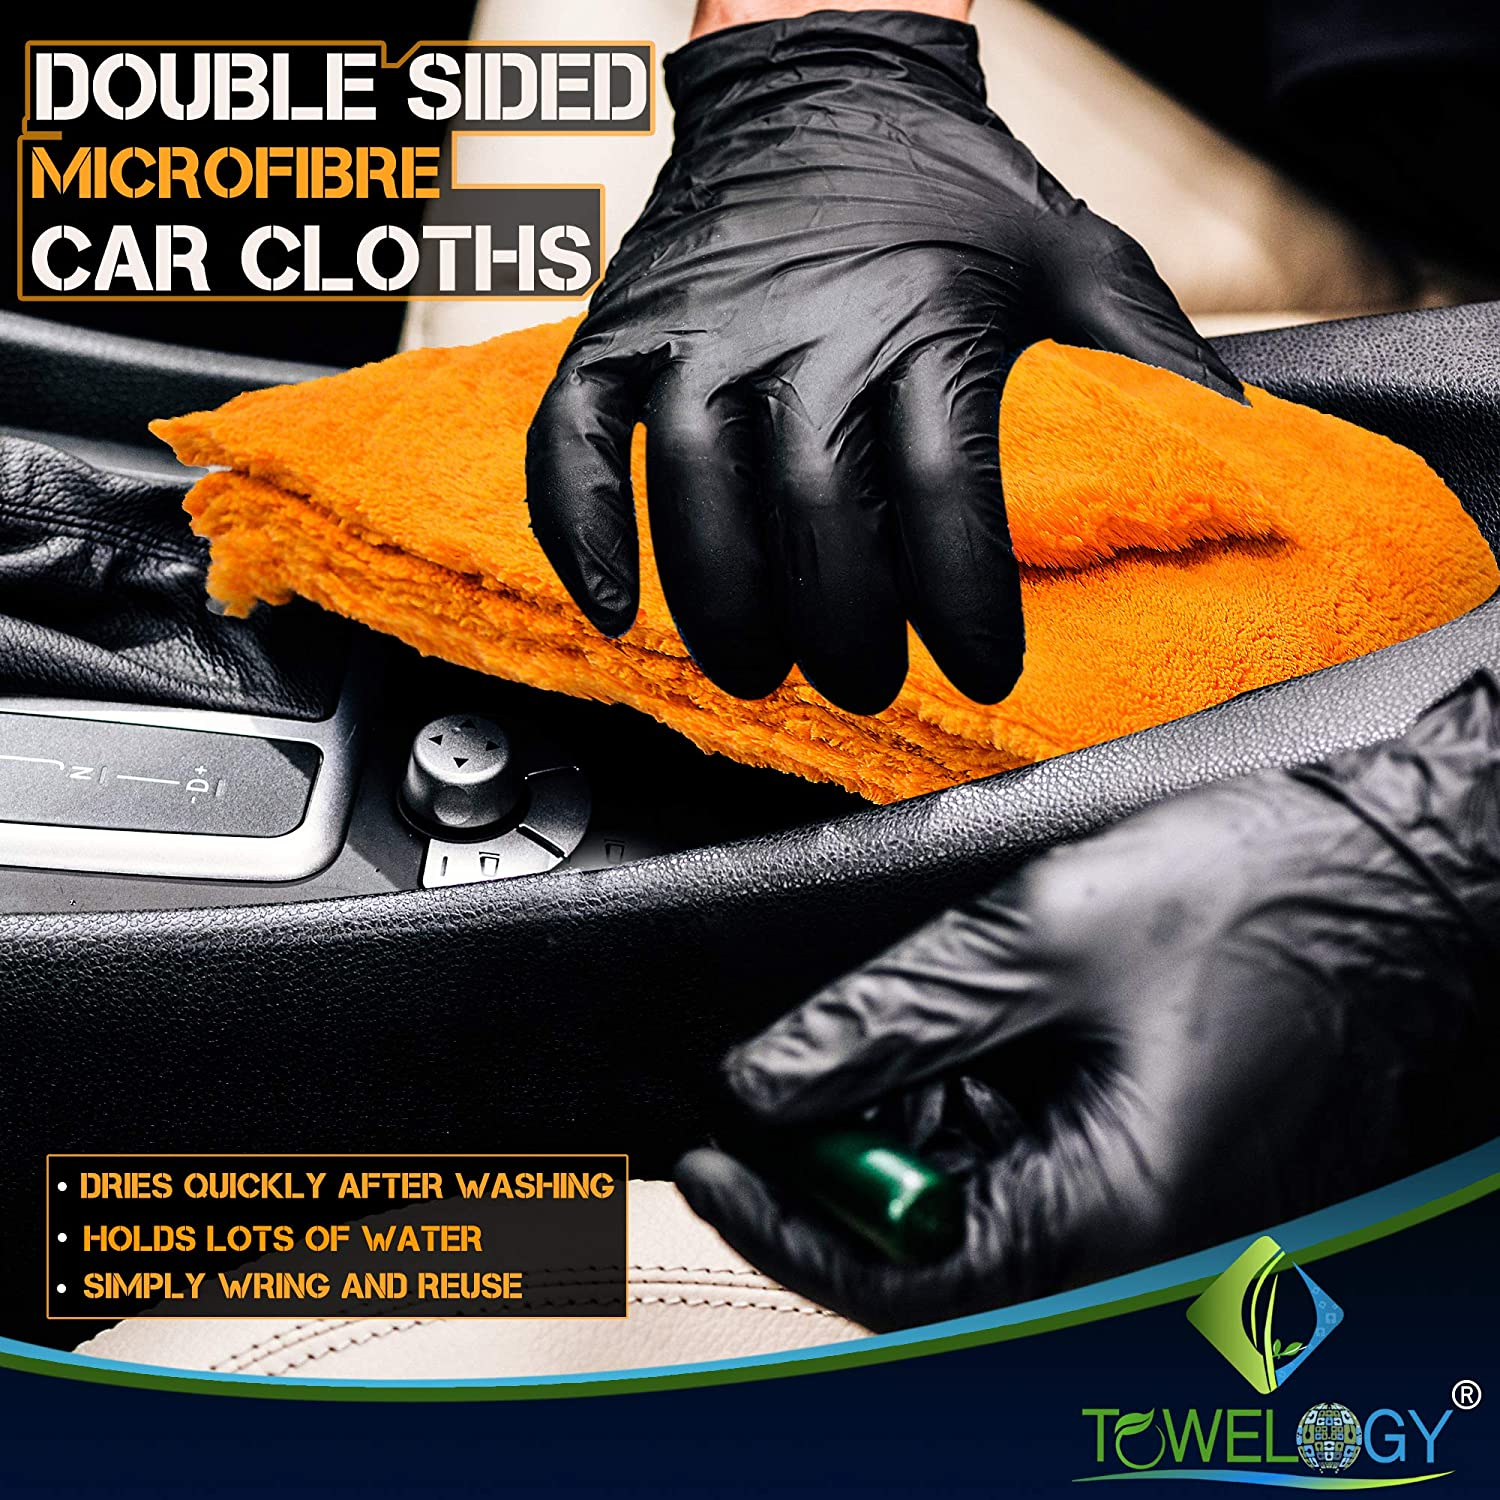 Microfibre Edgeless Car Cleaning Drying Cloth Quick Dry Super Plush - Towelogy